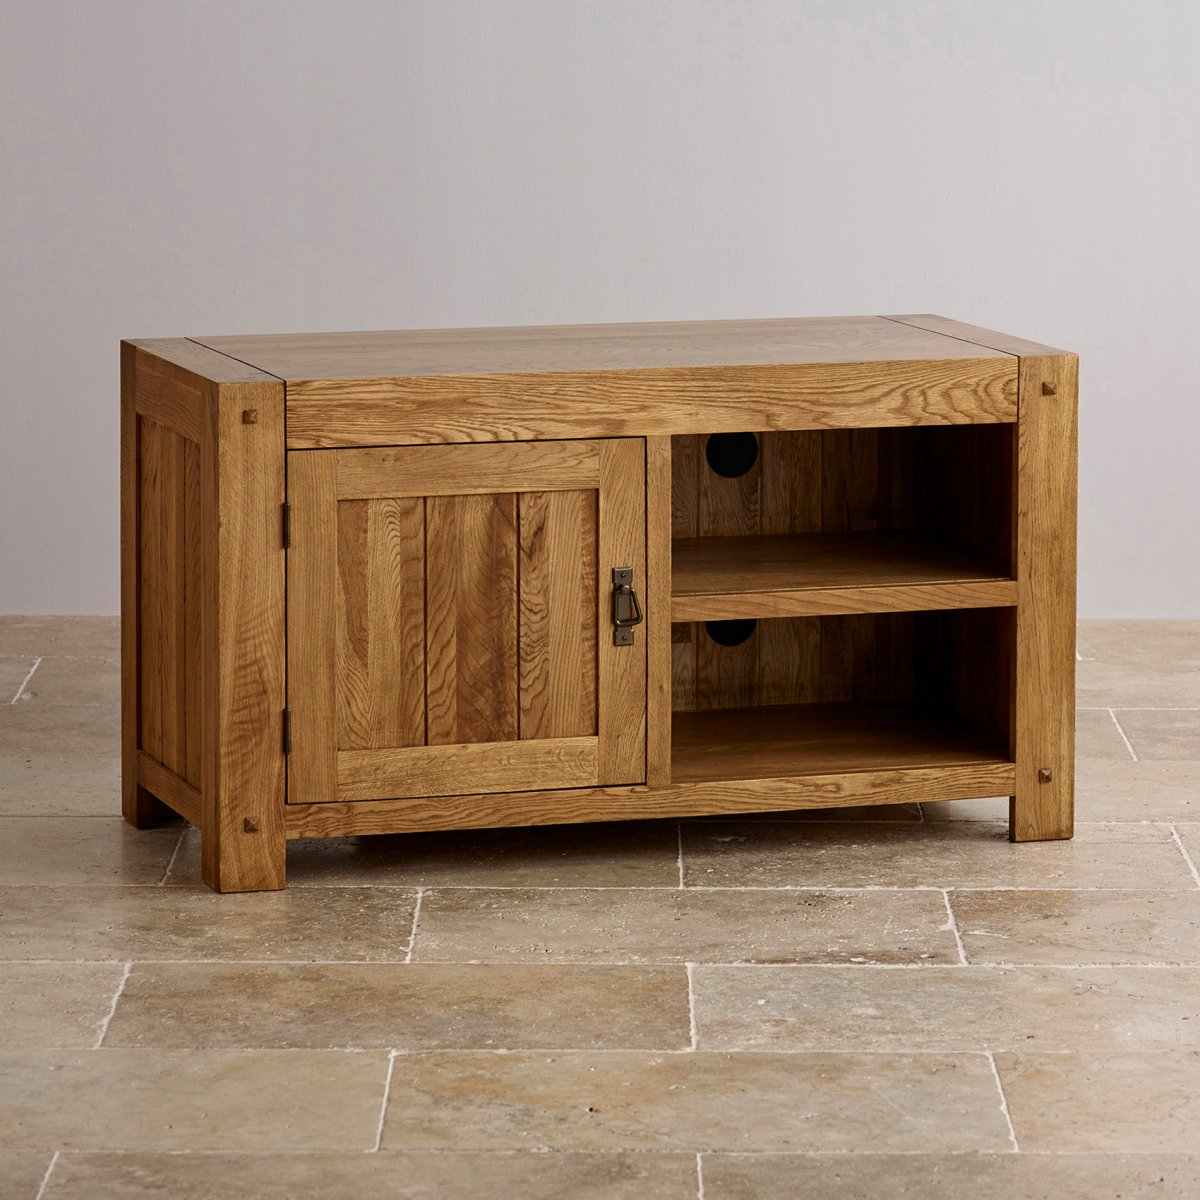 Quercus Tv Cabinet In Rustic Solid Oak | Oak Furniture Land With Tv Stands Cabinets (View 12 of 15)